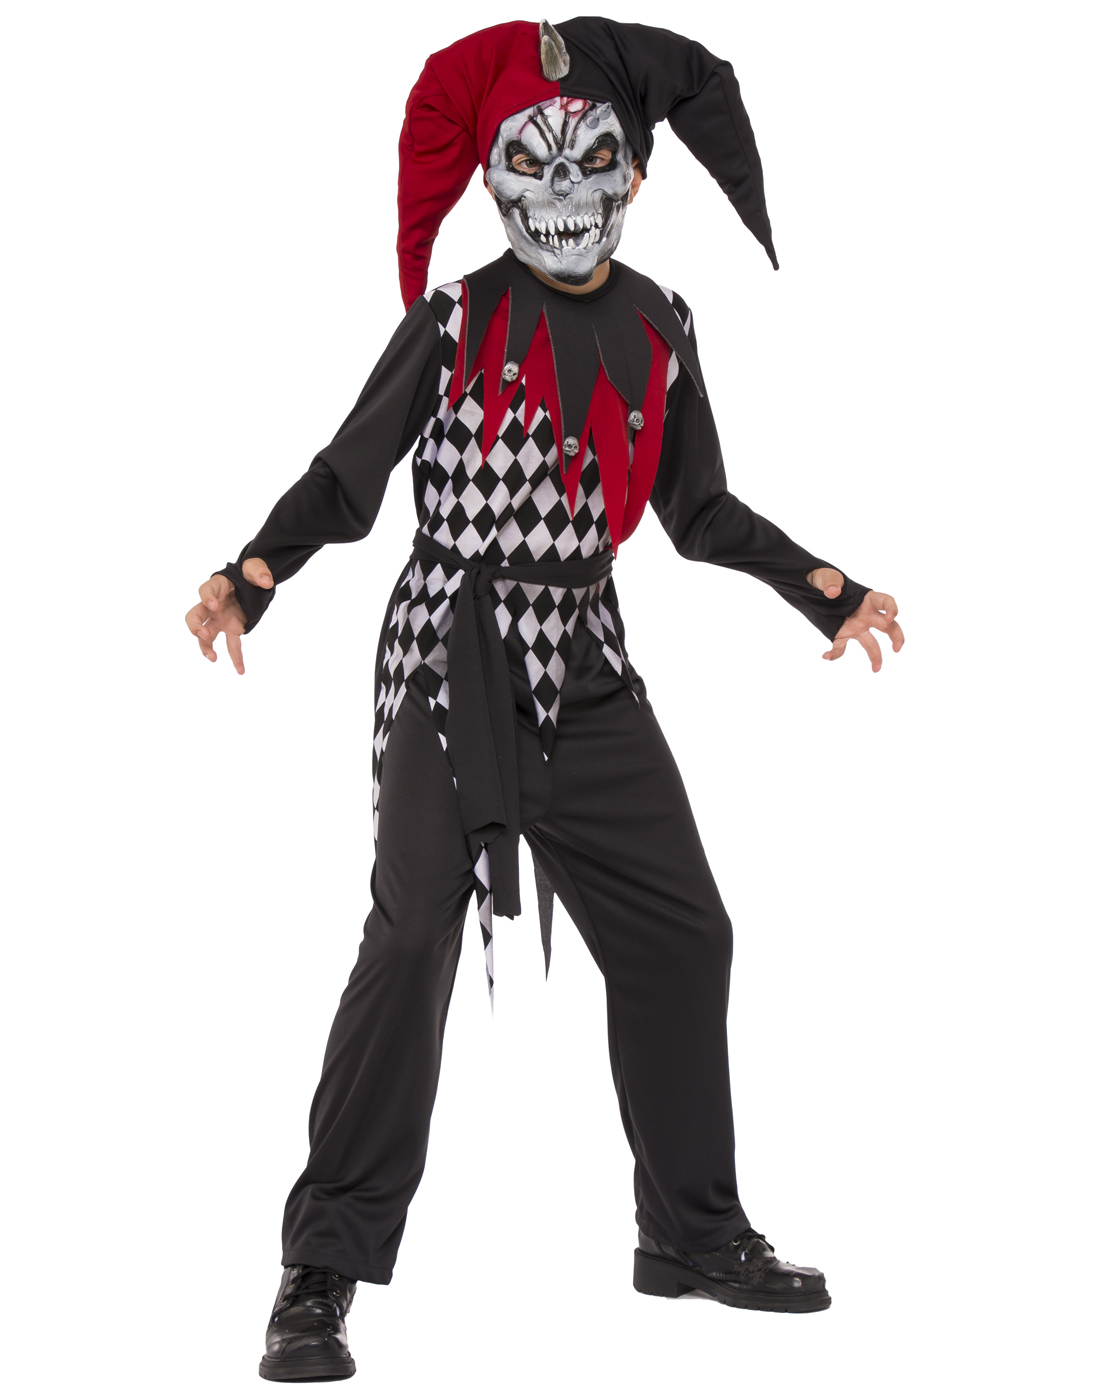 Good Evil Jester Boys Demon Evil Clown Child Red Black Halloween Costume